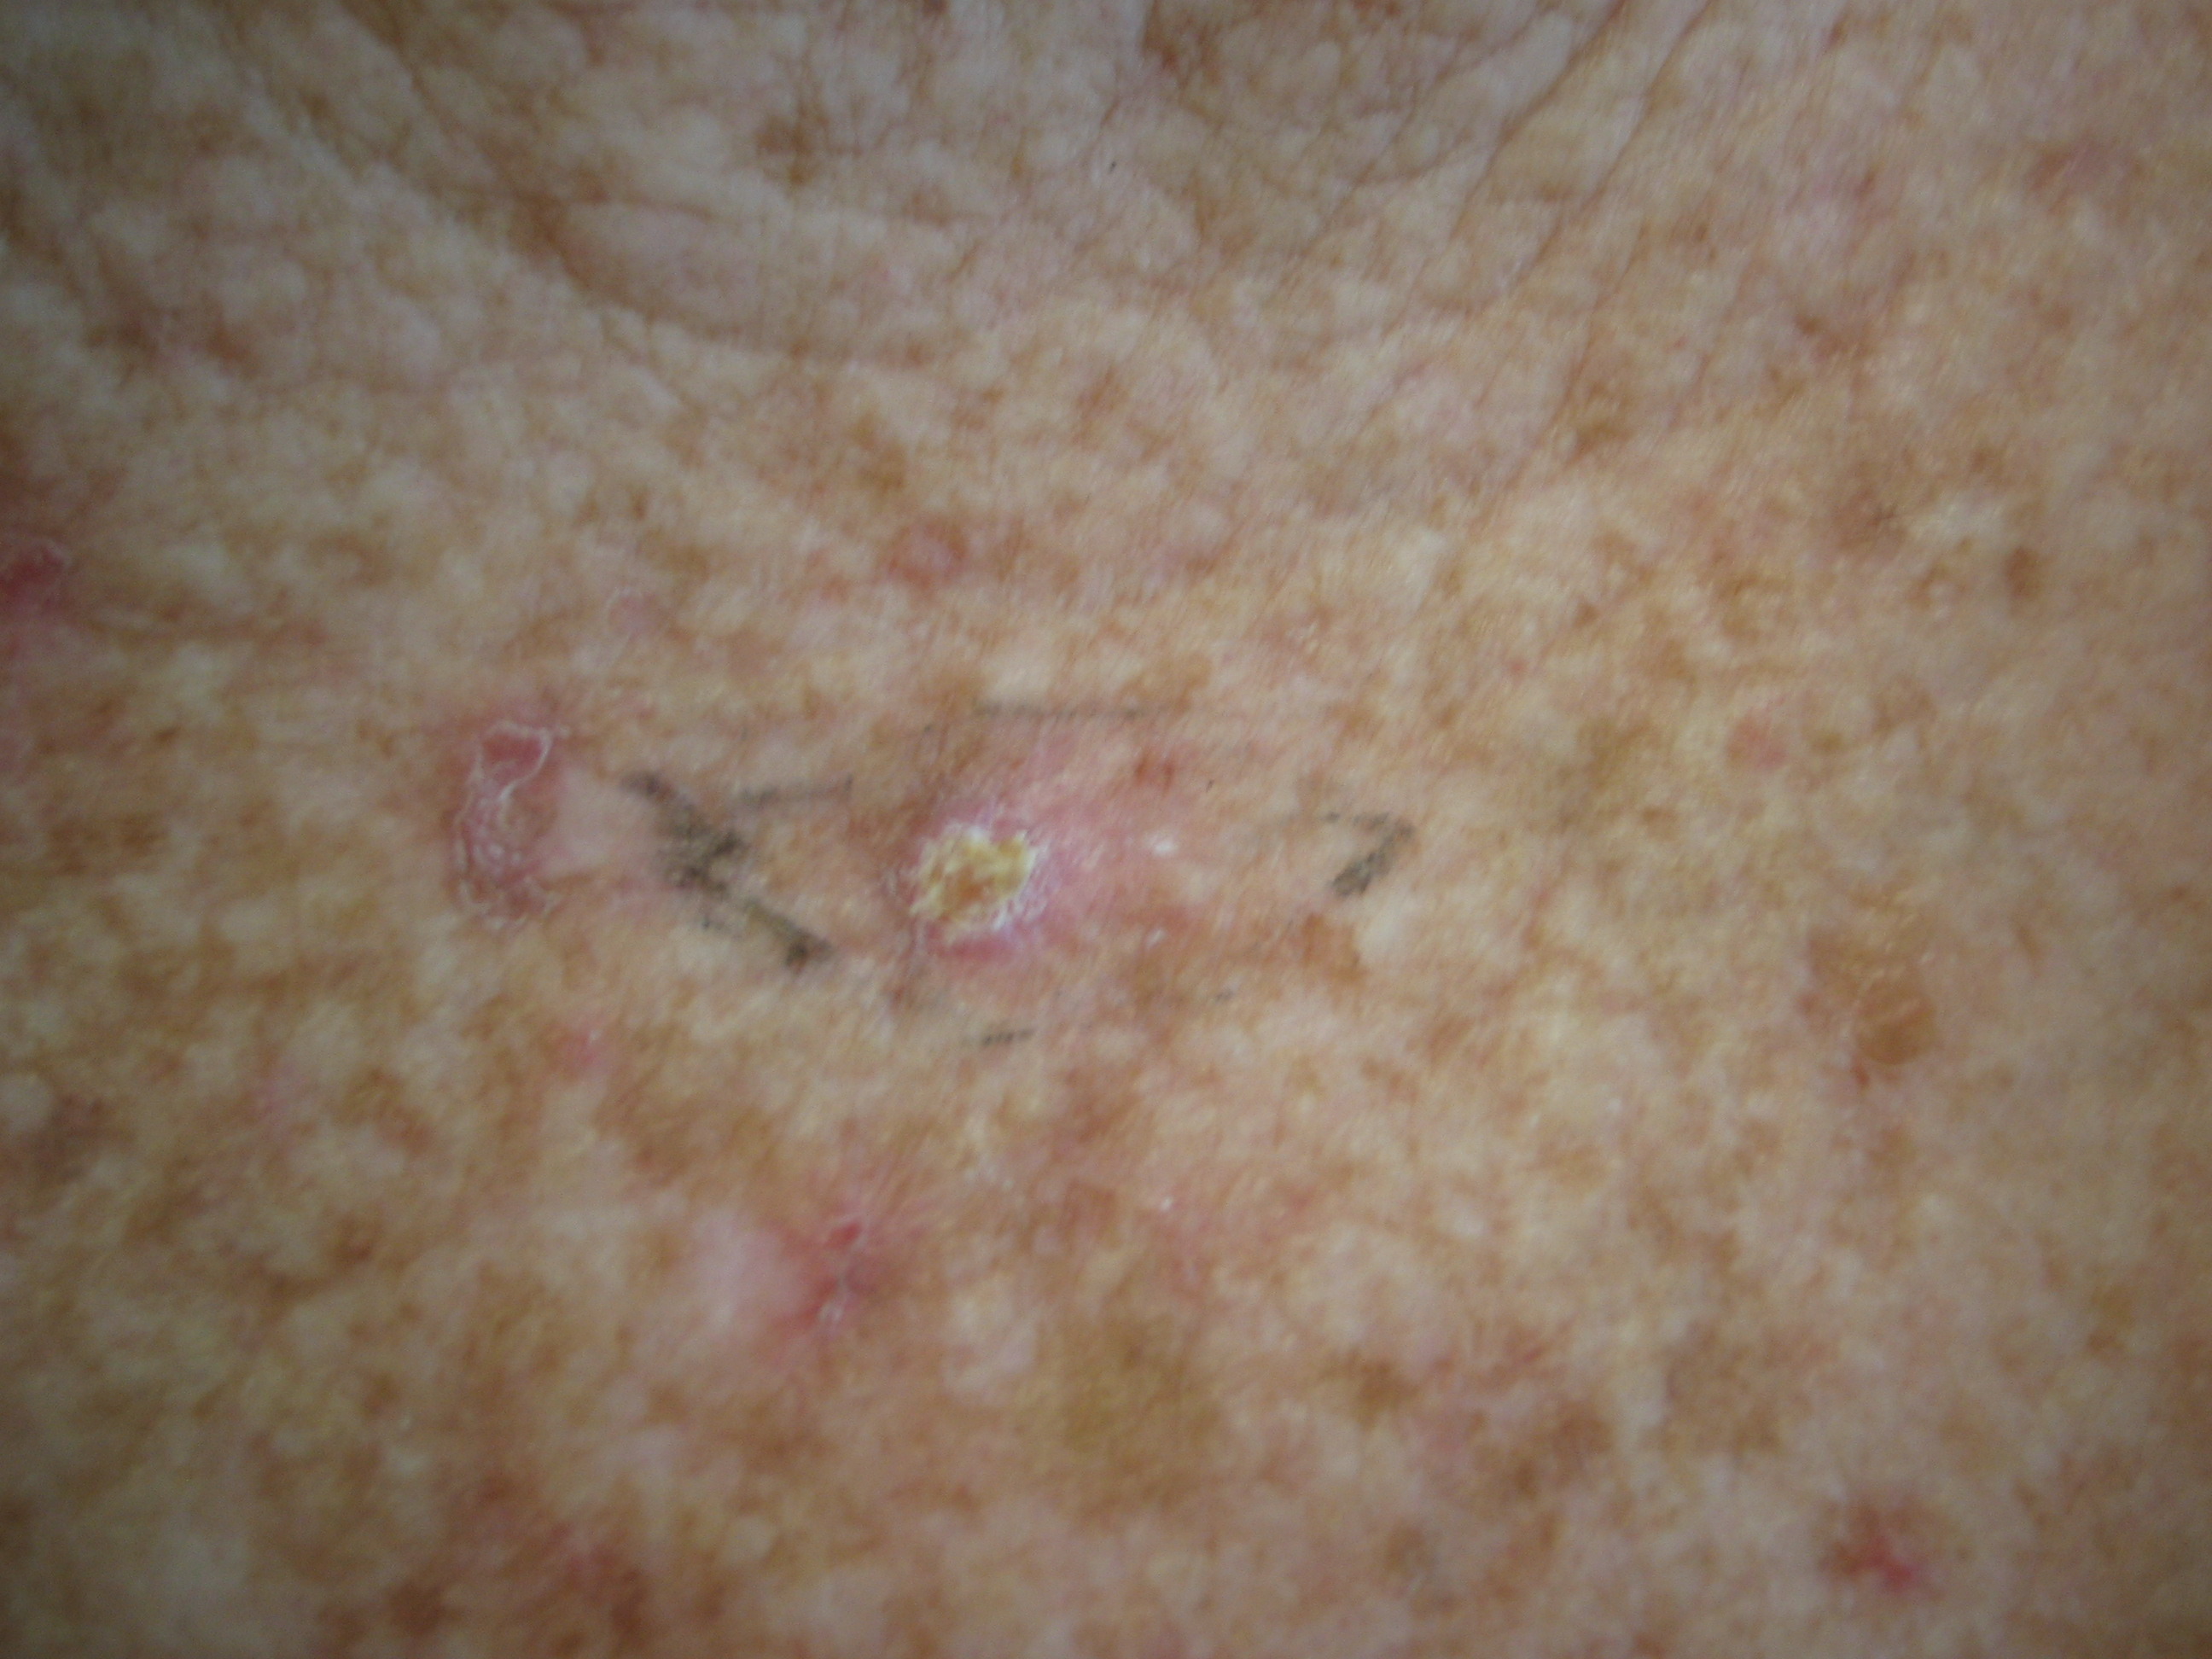 Bowen's Disease (squamous cell carcinoma in situ) on the chest.